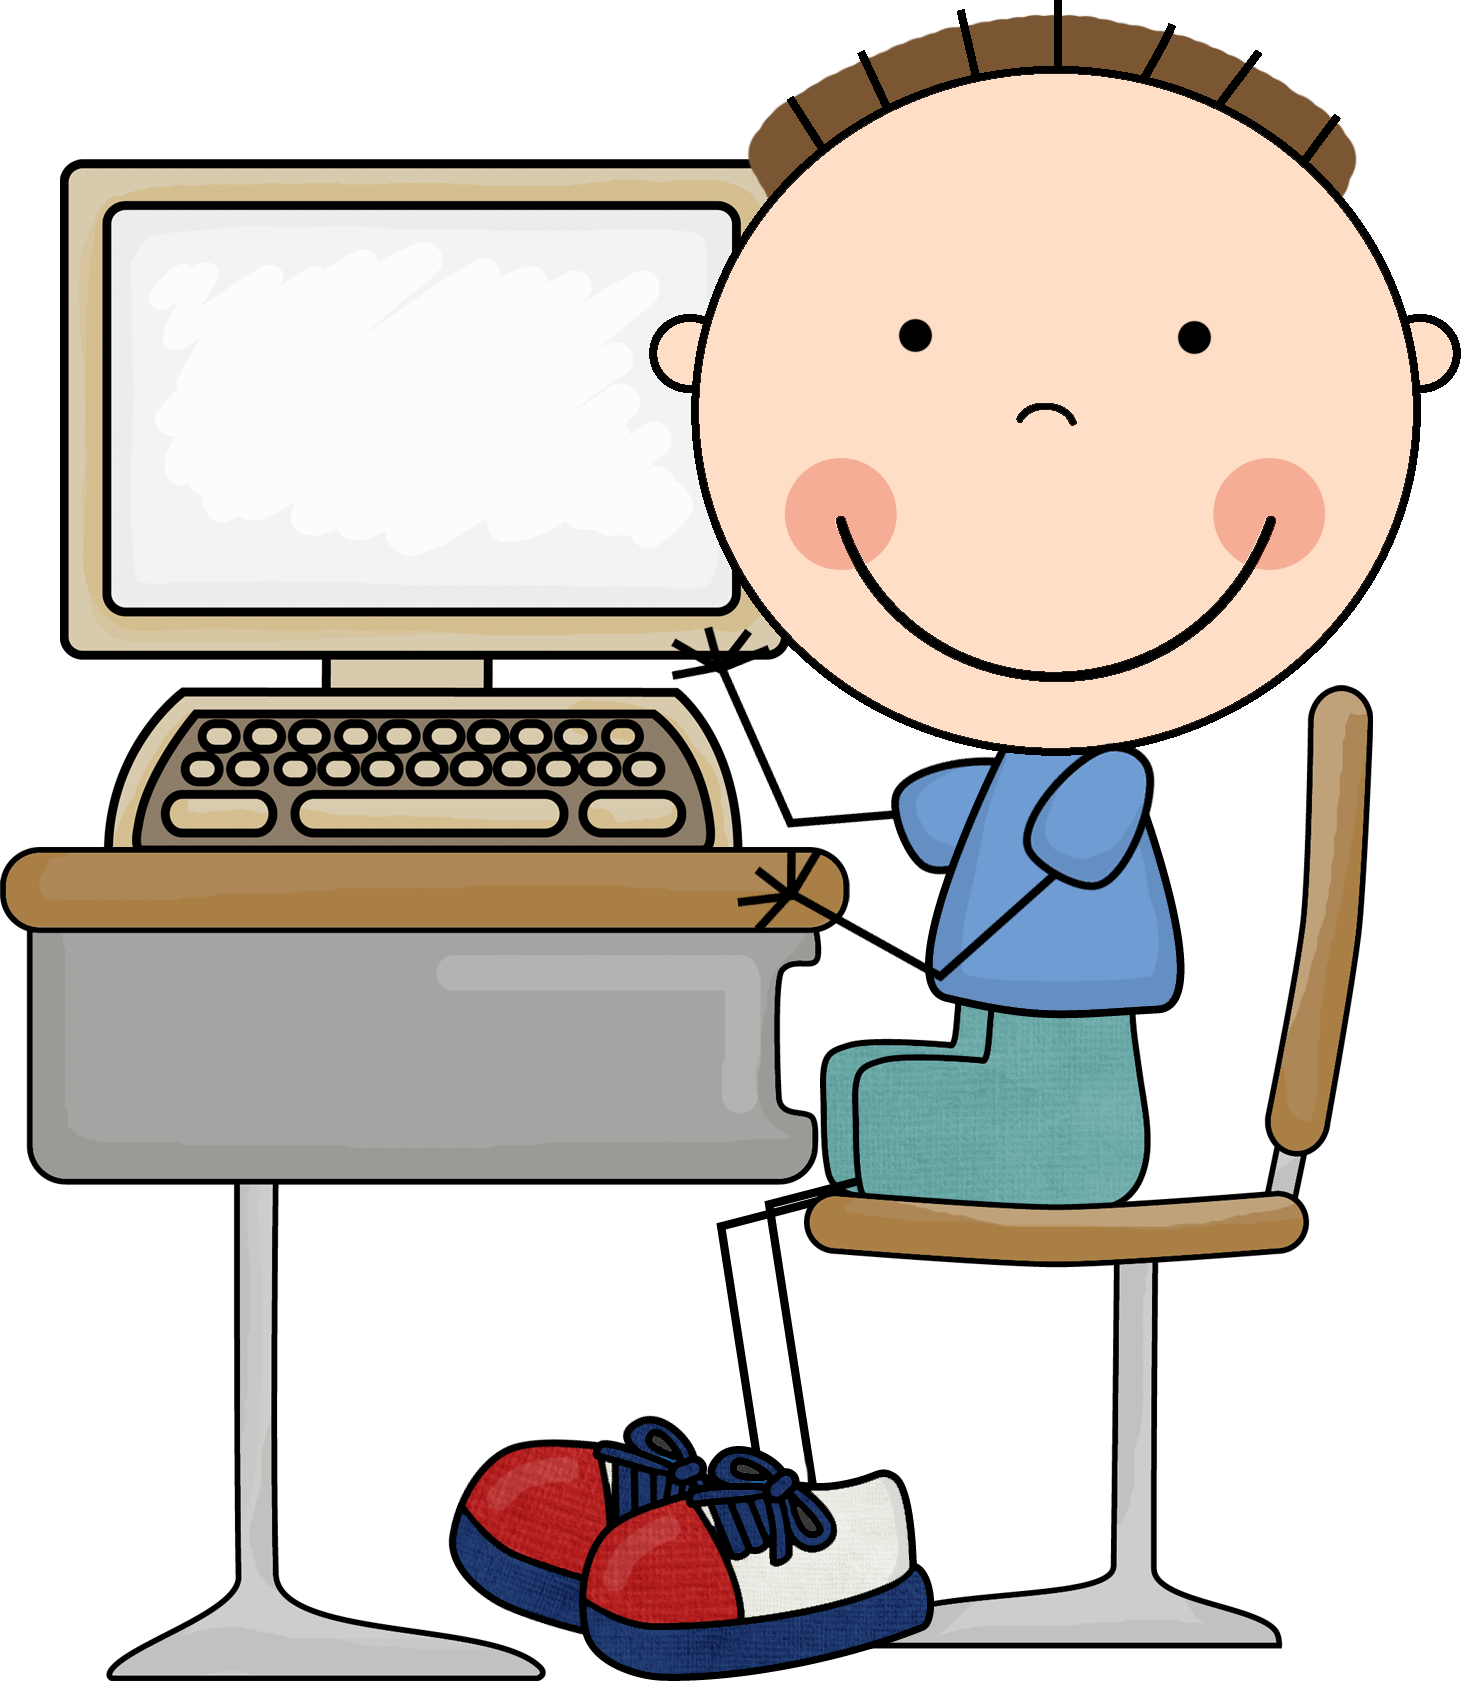 Children in a computer clipart image free download Clipart kids on computer - ClipartFest image free download